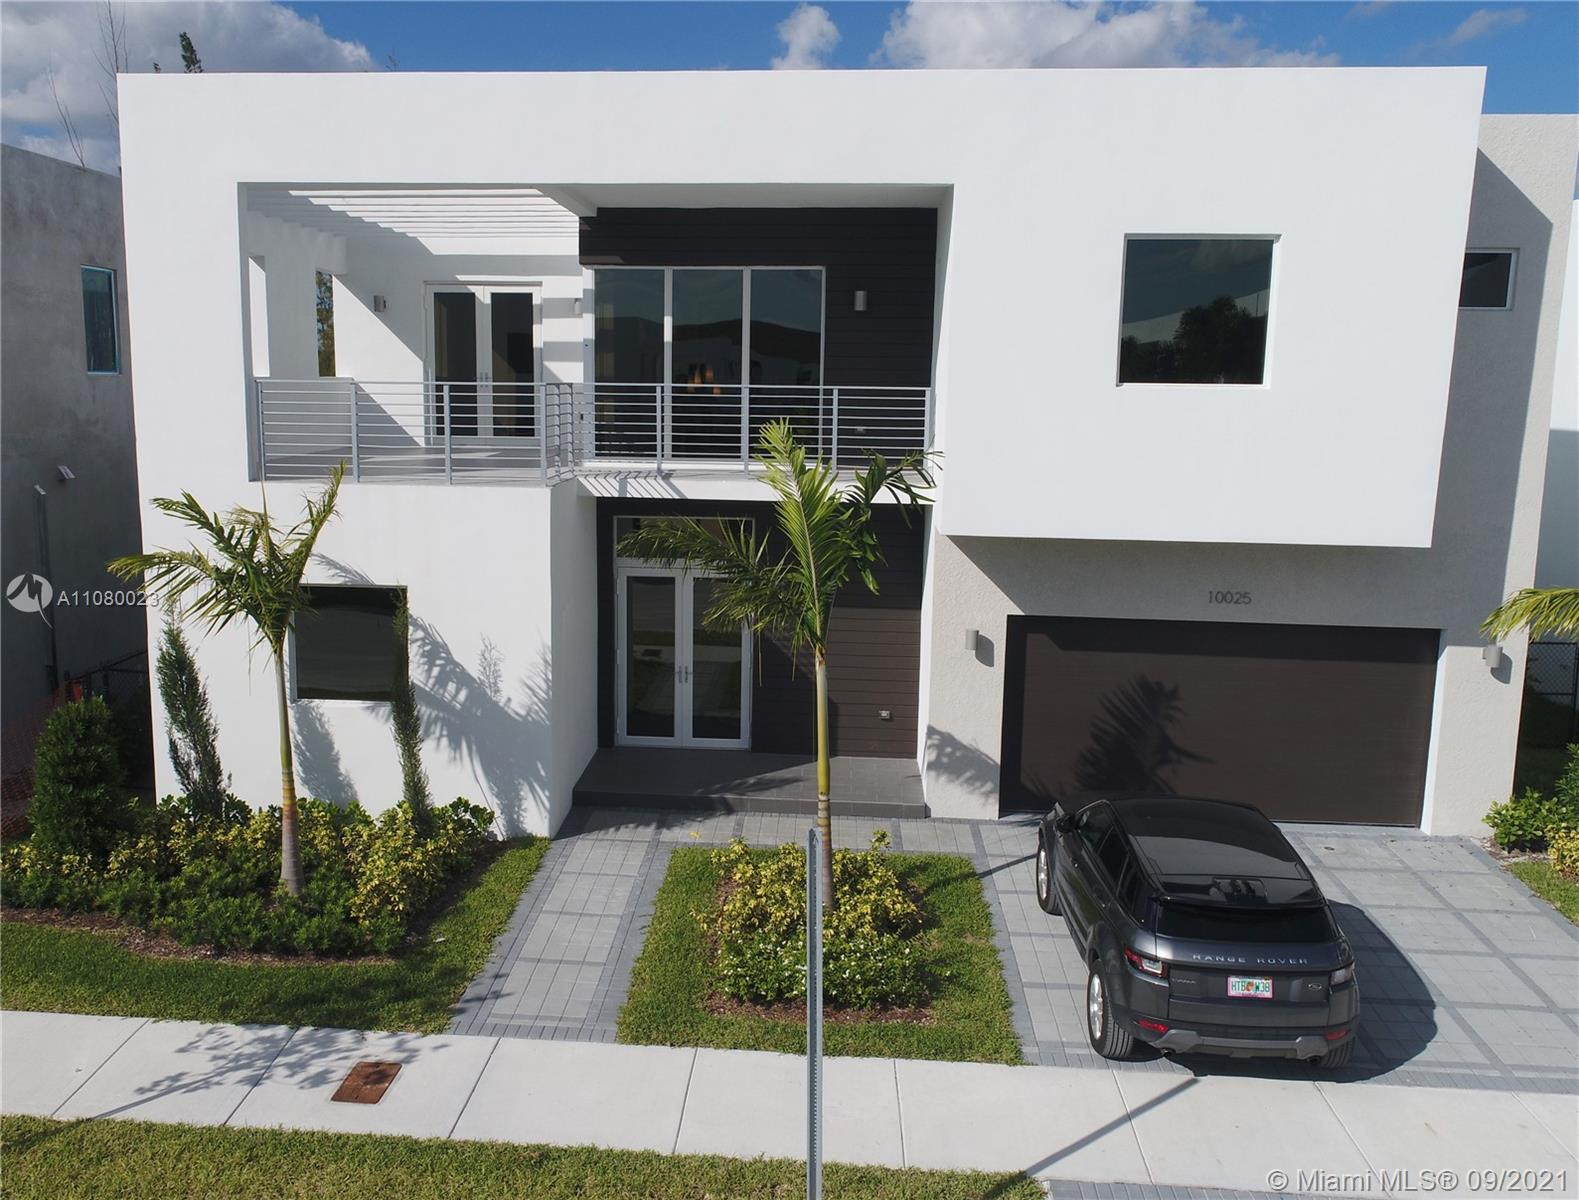 Doral Commons Residential - 10025 NW 77th St, Doral, FL 33178